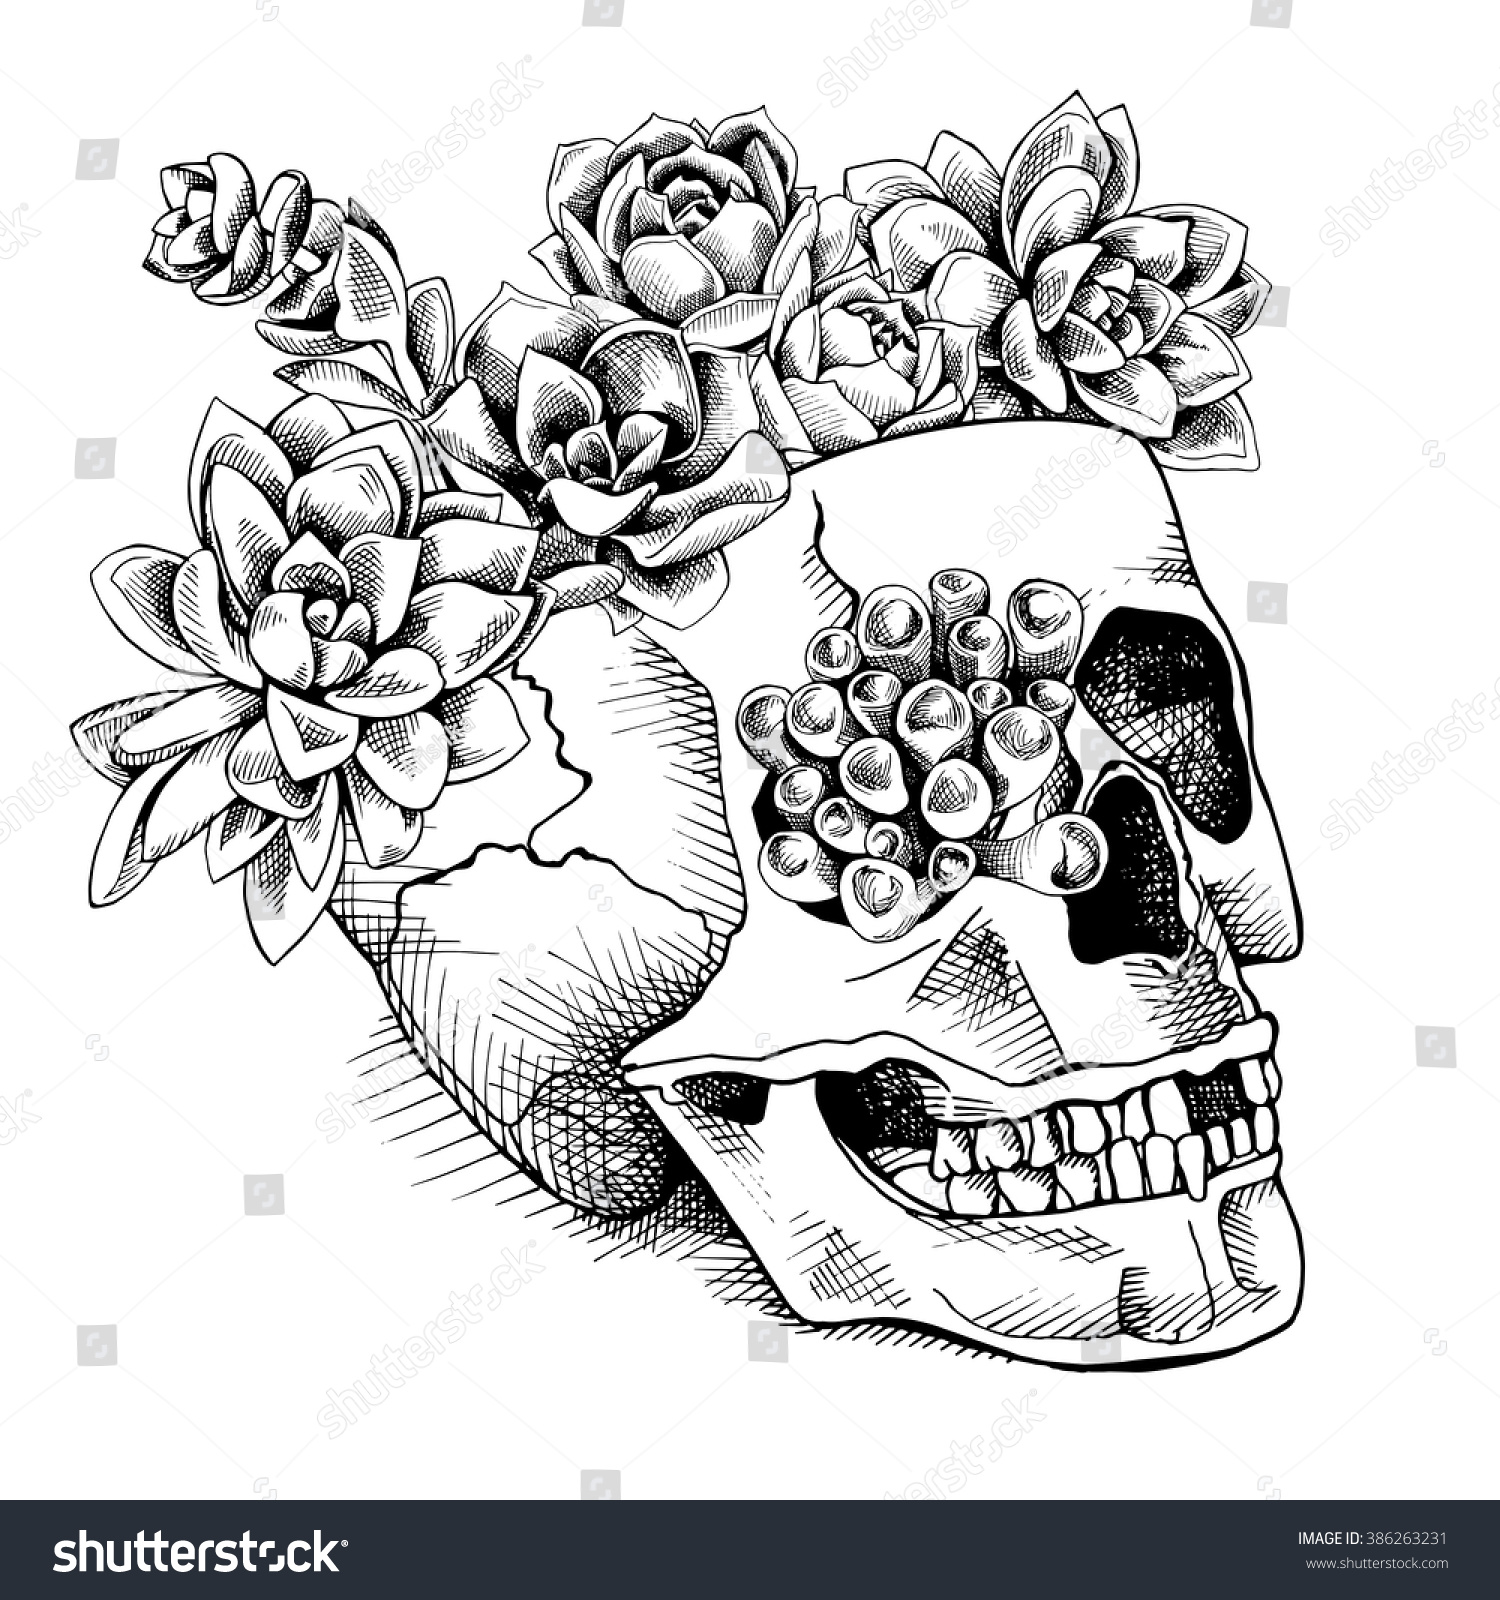 Skull Succulent Plants Vector Illustration Stock Vector Royalty Free 386263231